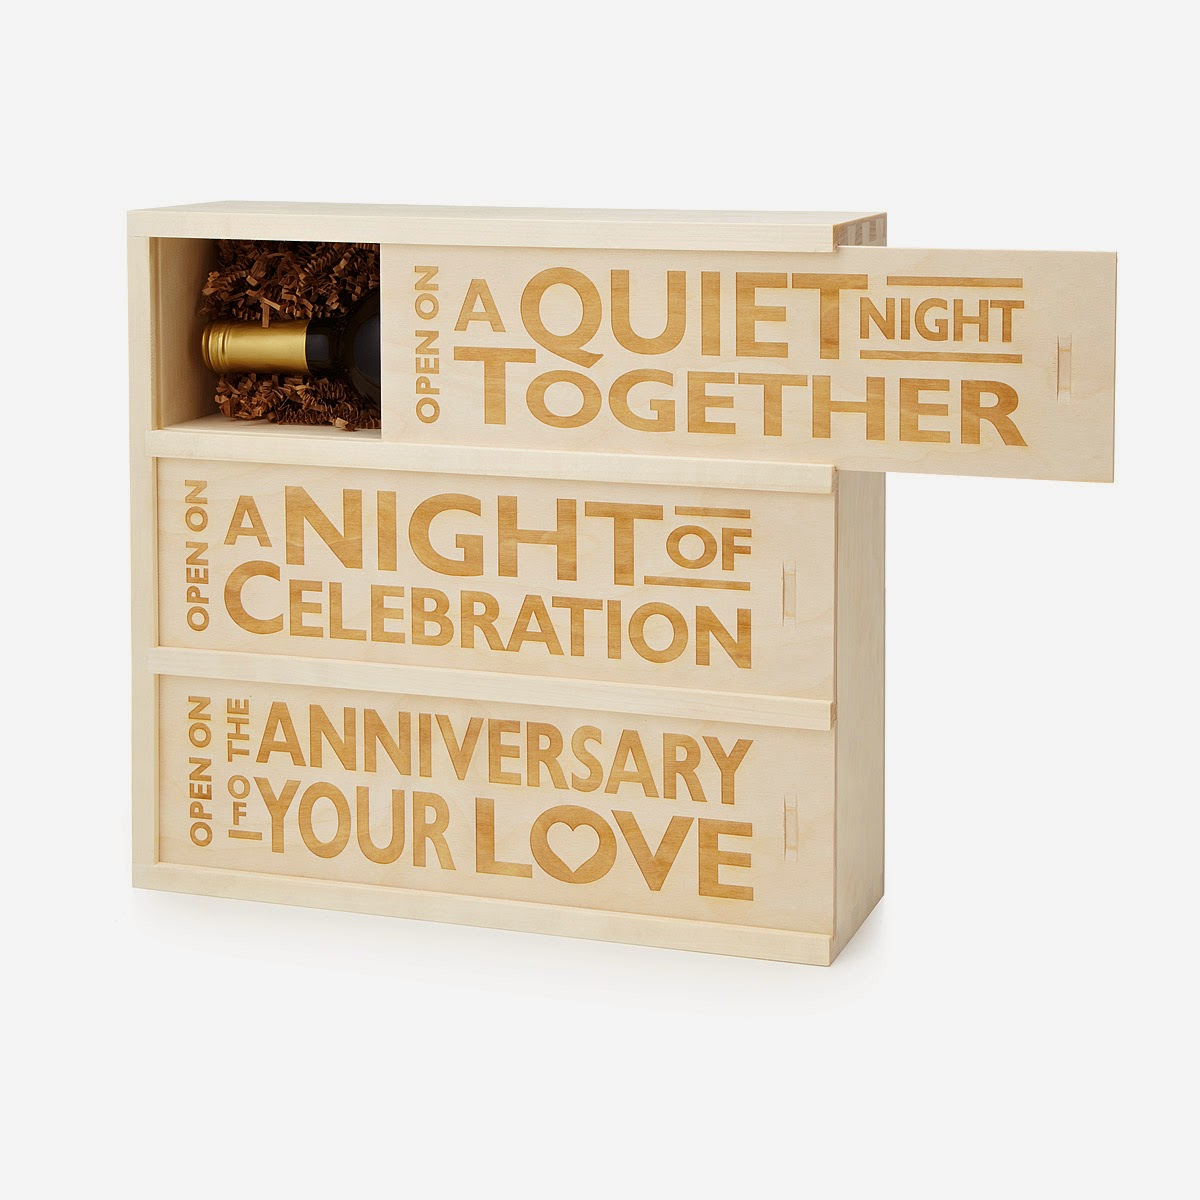 5th Wedding Anniversary Gift Ideas 12 New I might have fallen